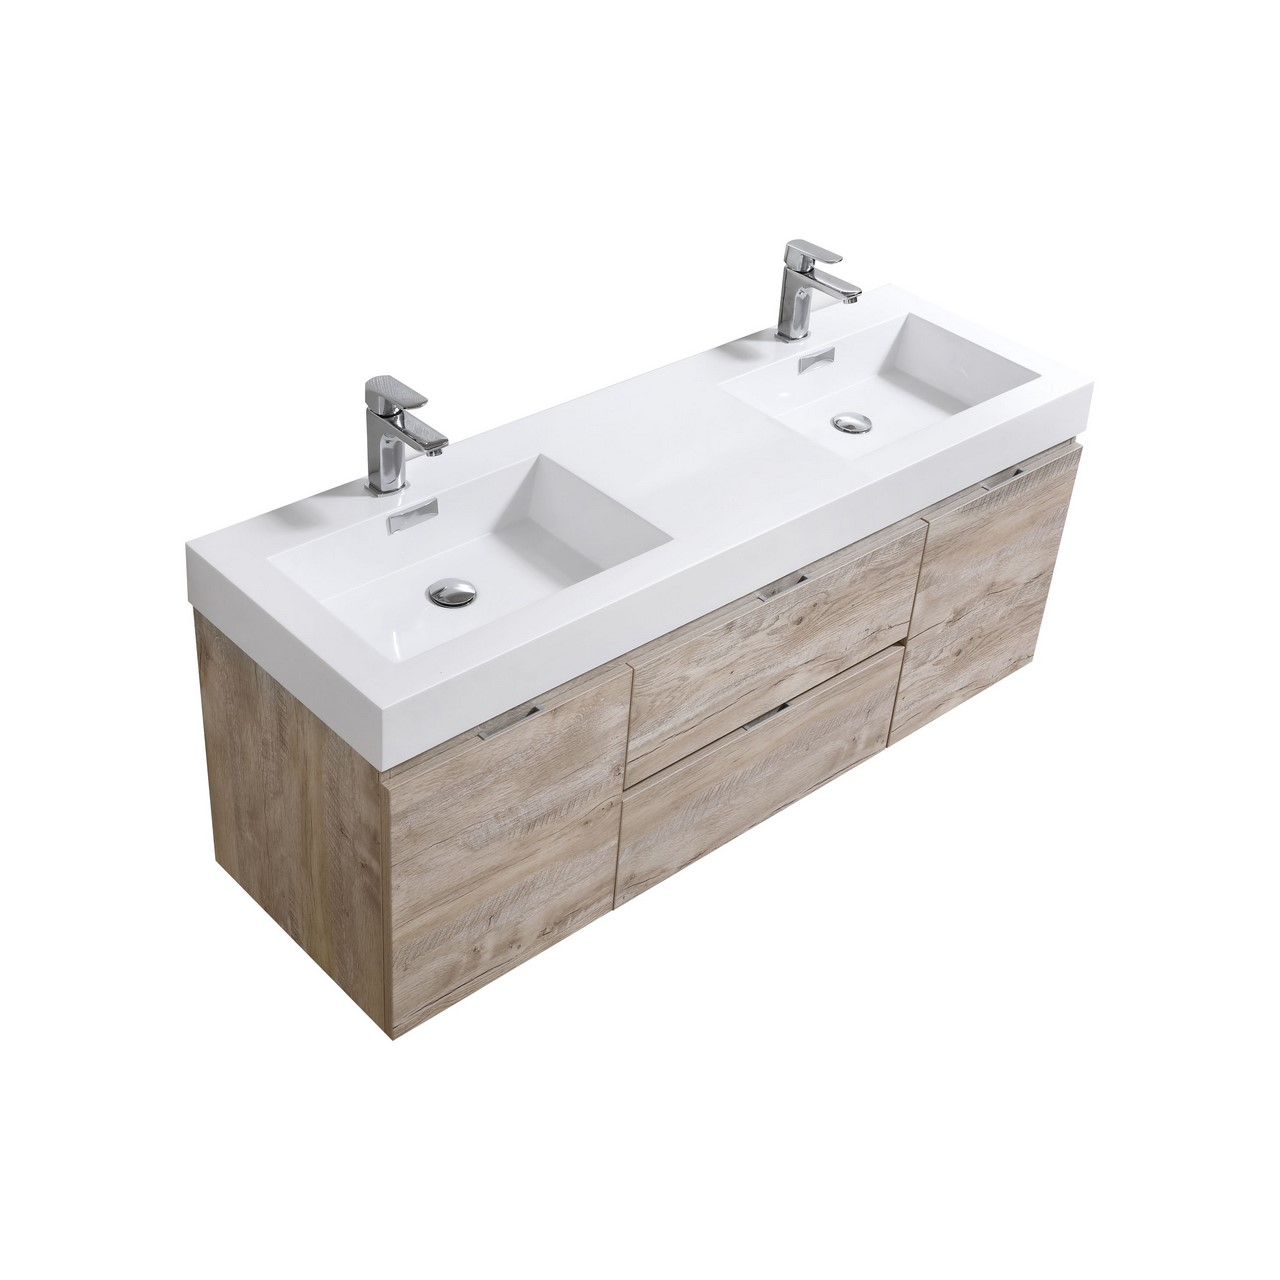 Bliss 60 nature wood wall mount double sink modern bathroom vanity - Modern bathroom vanity double sink ...